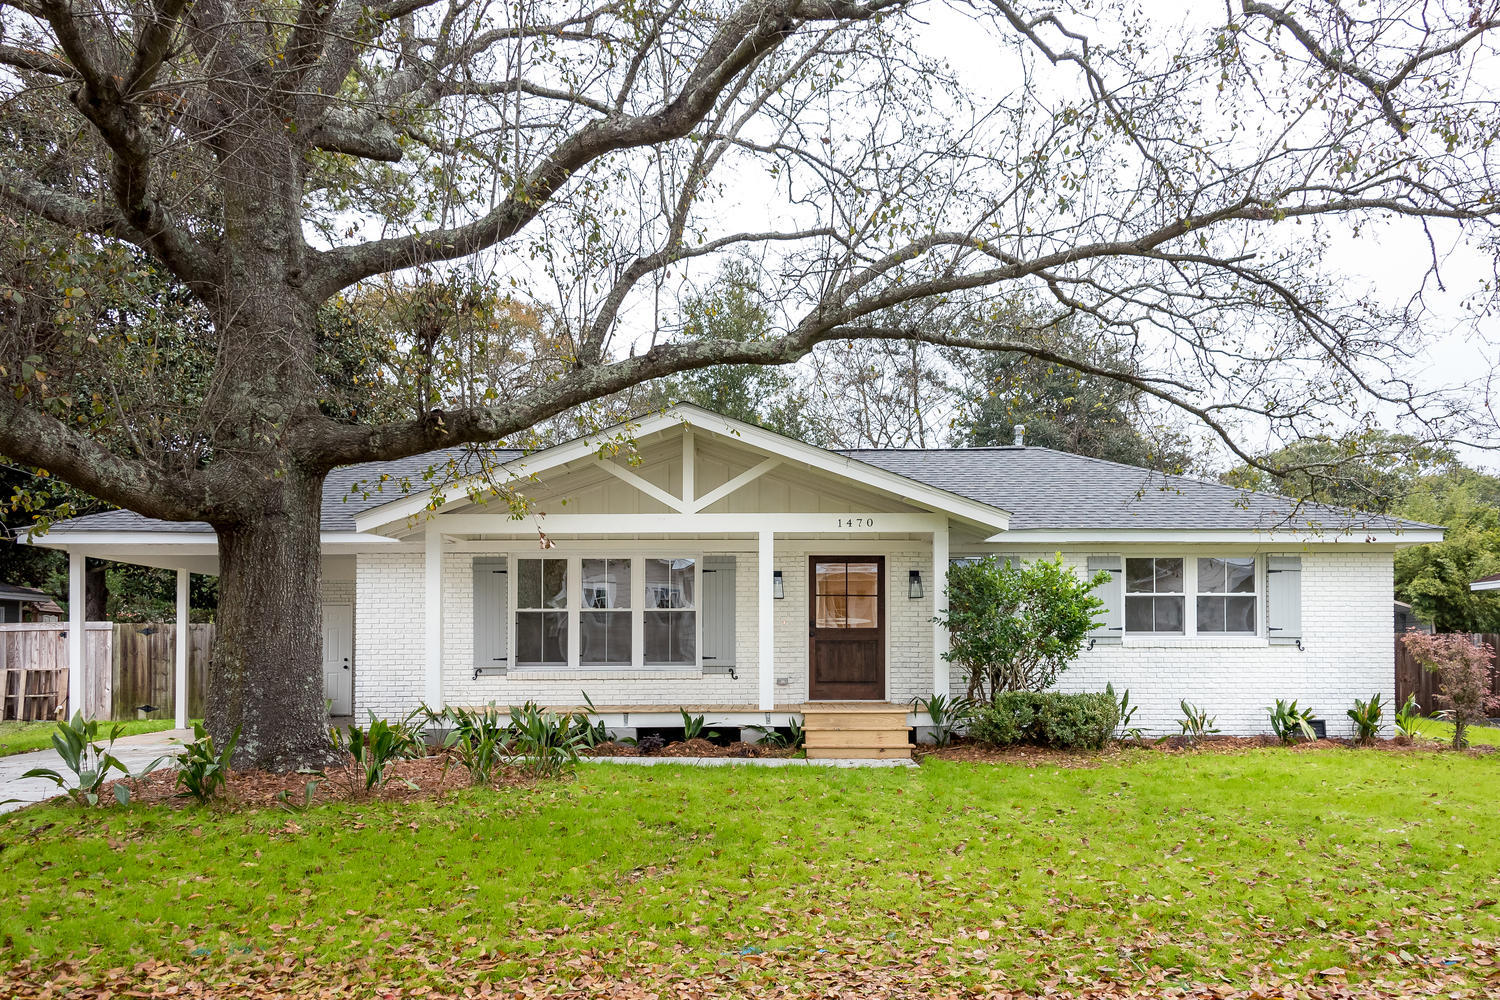 Old Mt Pleasant Homes For Sale - 1470 Mataoka, Mount Pleasant, SC - 24